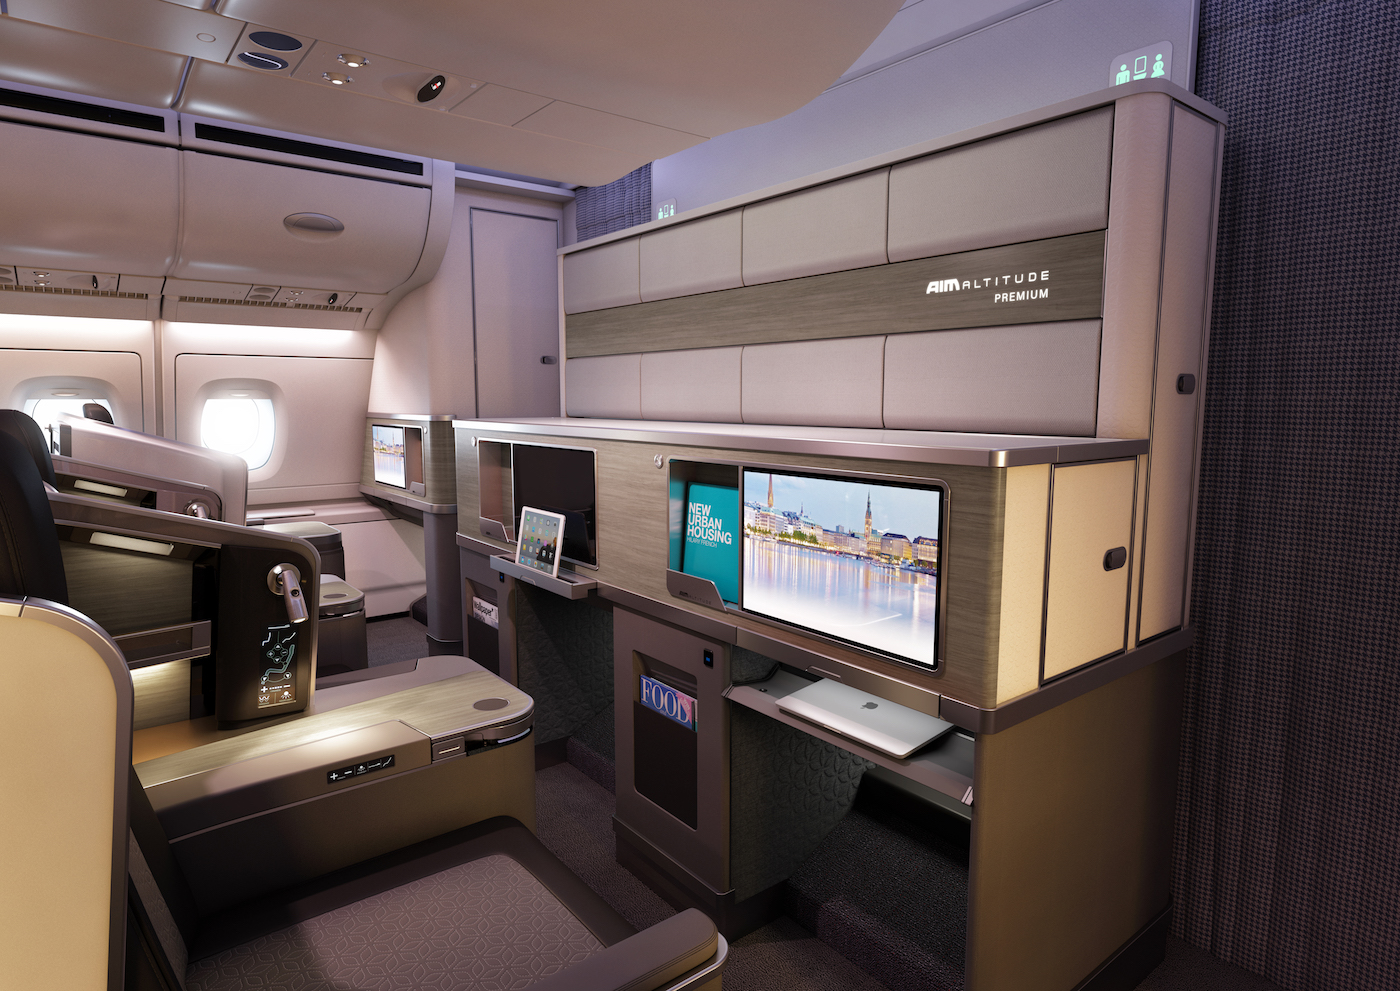 AIM Altitude has created concept front-row monuments (FRMs) for aircraft interiors